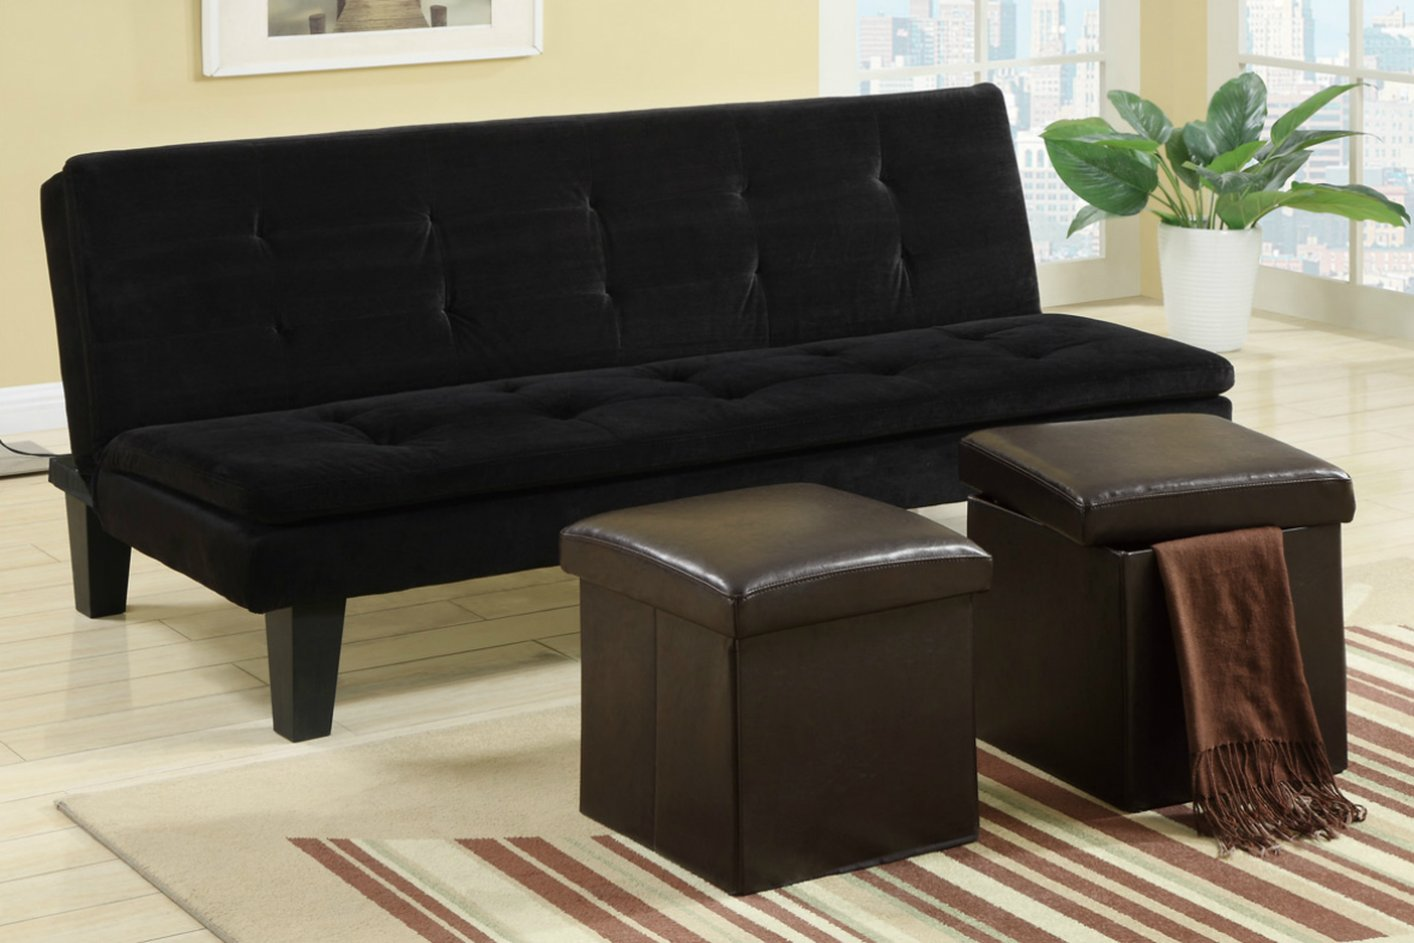 Black Fabric Twin Size Sofa Bed  StealASofa Furniture Outlet Los Angeles CA